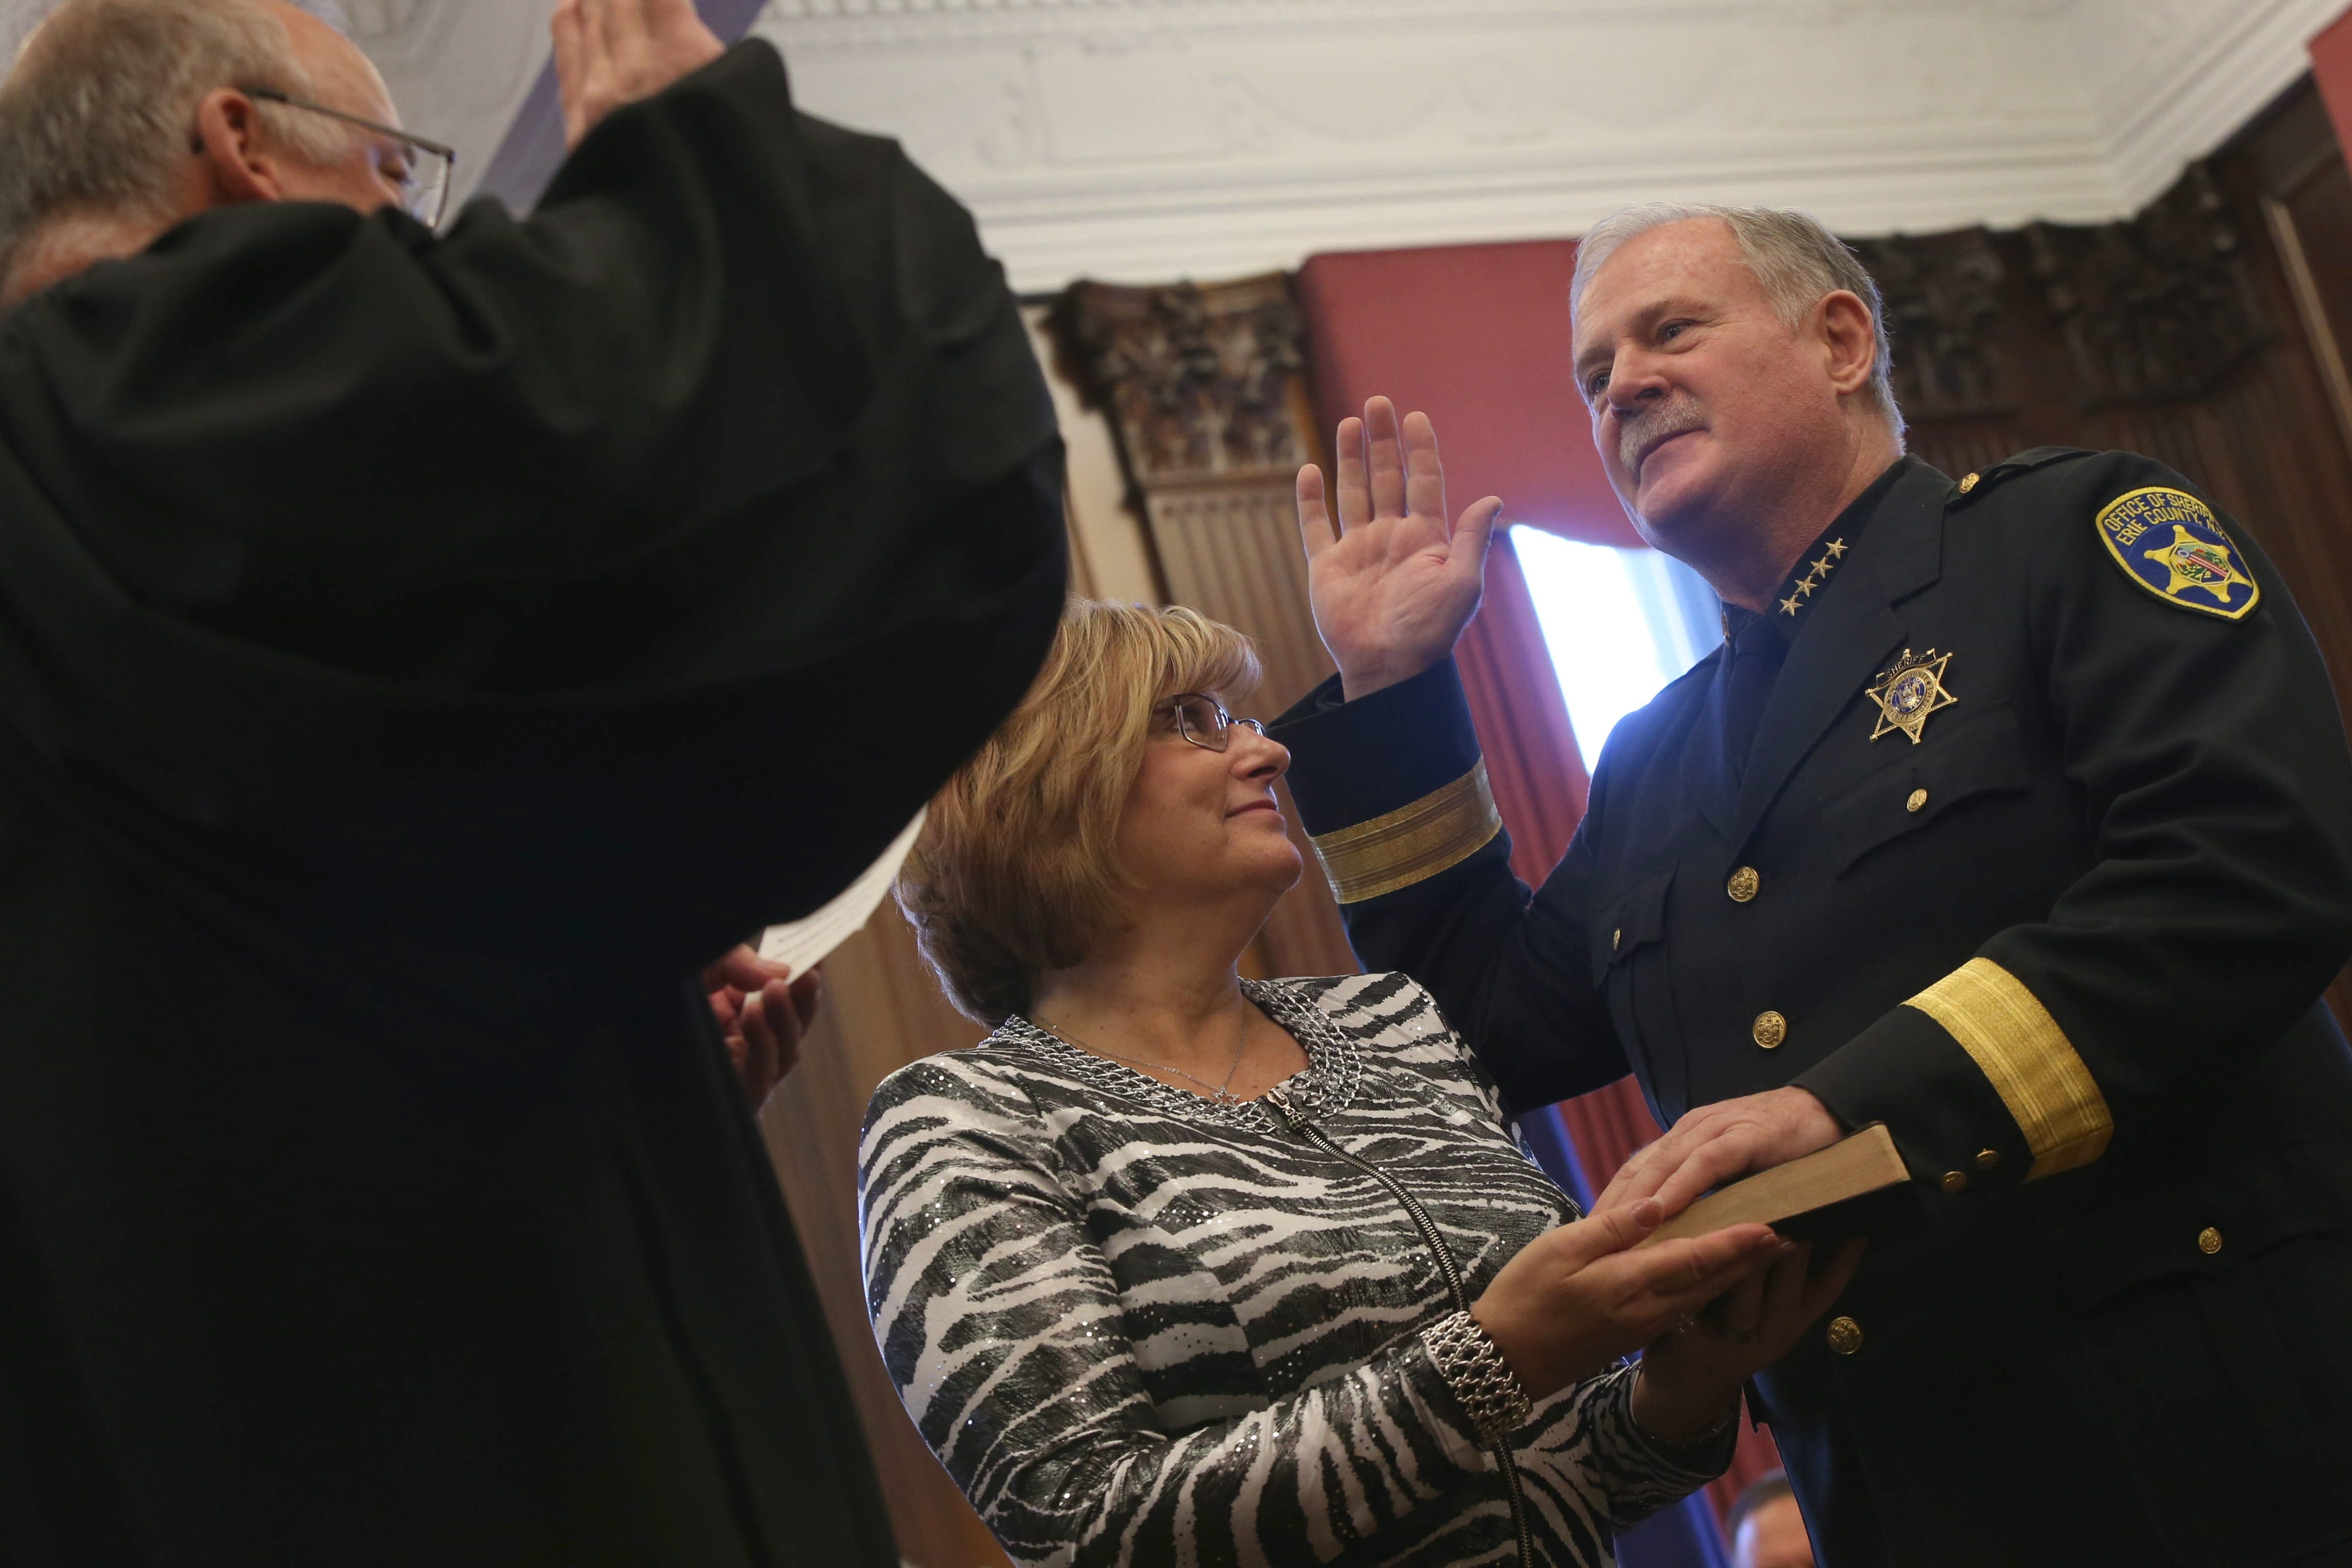 State Supreme Court Justice M. William Boller swears in Erie County Sheriff Timothy B. Howard for his third term on Monday as Howard's wife, Sue, holds the Bible. Howard said he will continue to oppose the state's gun control law.